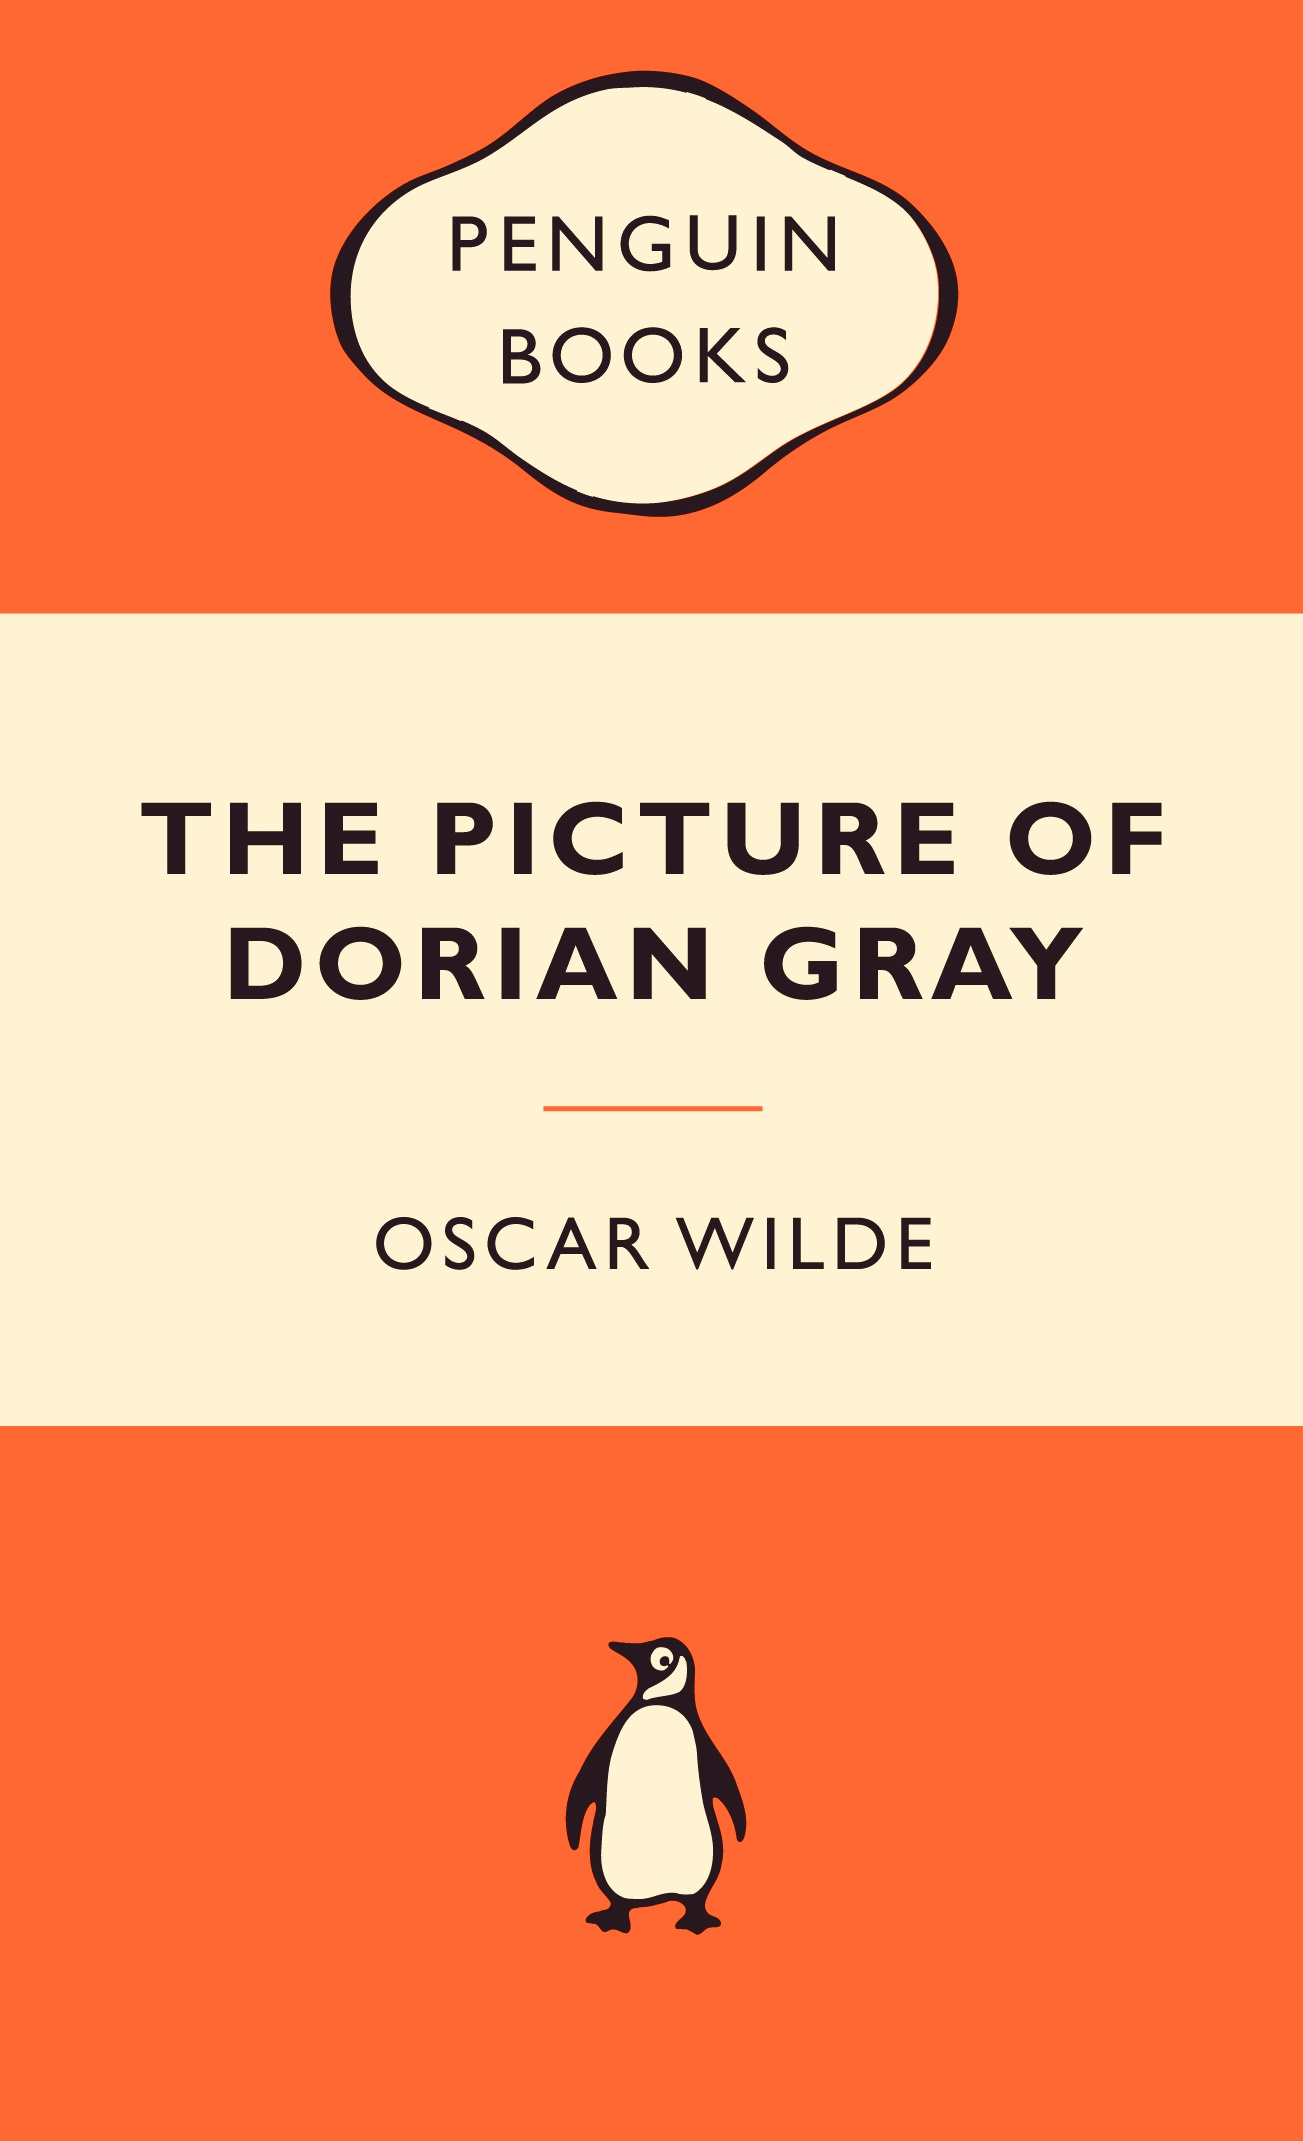 turkey gets uncensored dorian gray at last